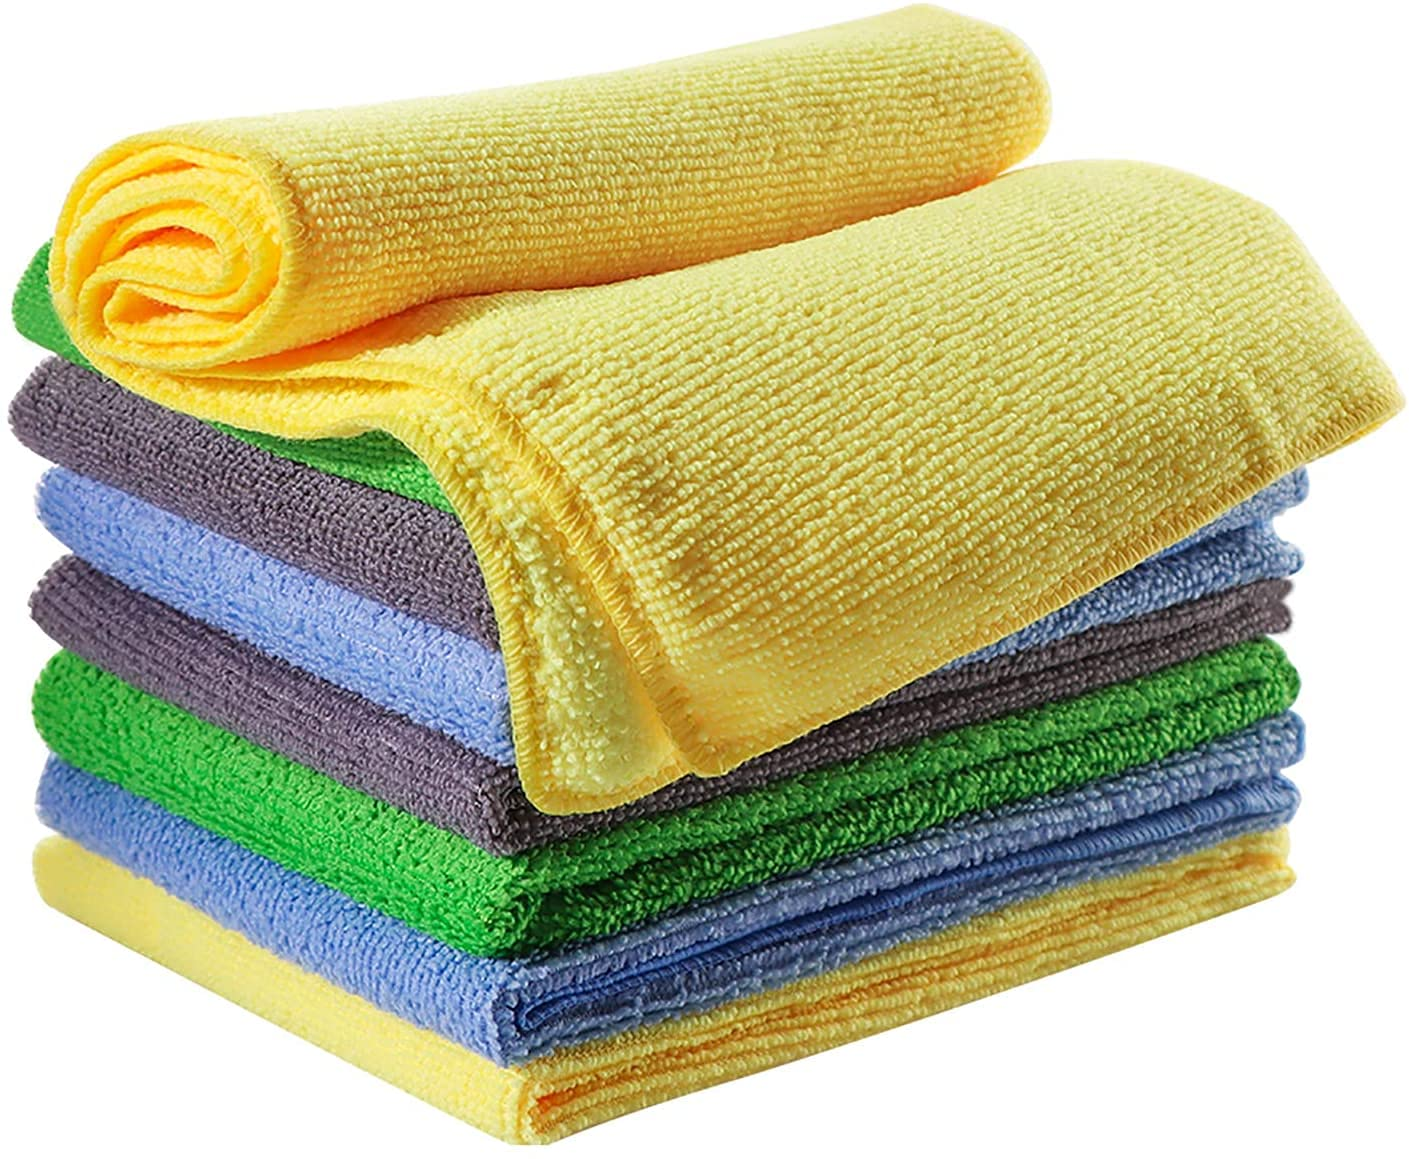 woscher-large-soft-and-quick-drying-car-microfiber-cleaning-cloth-microfiber-cloth-polishing-waxing-auto-detailing-towel-cloth-assorted-40-x-40-cm-pack-of-12